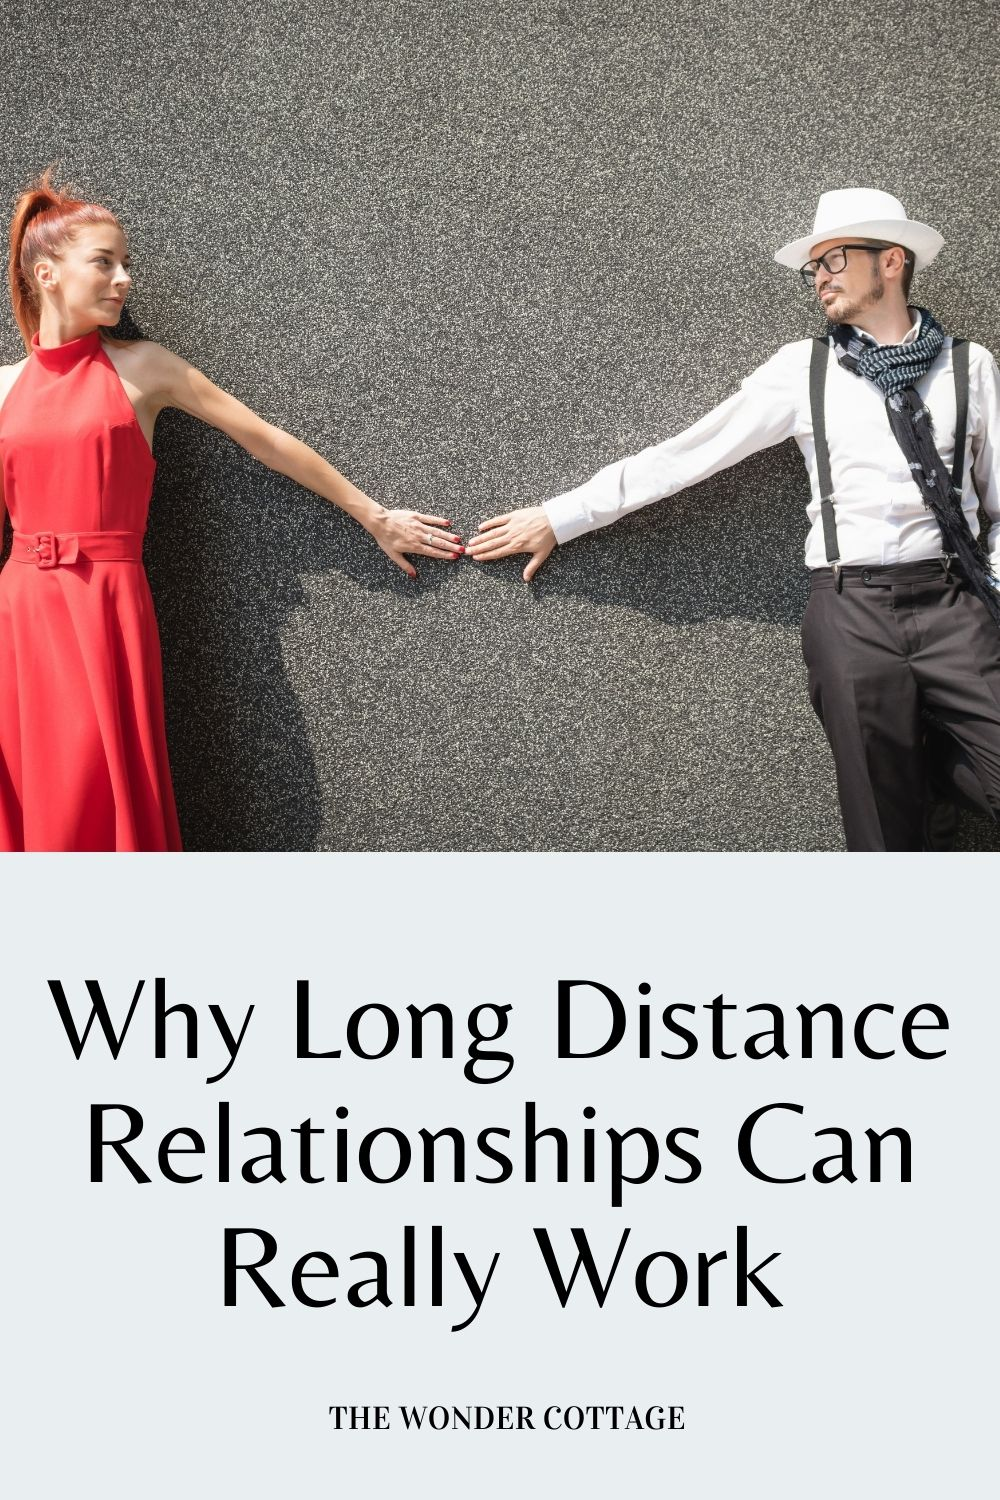 why long distance relationships can really work